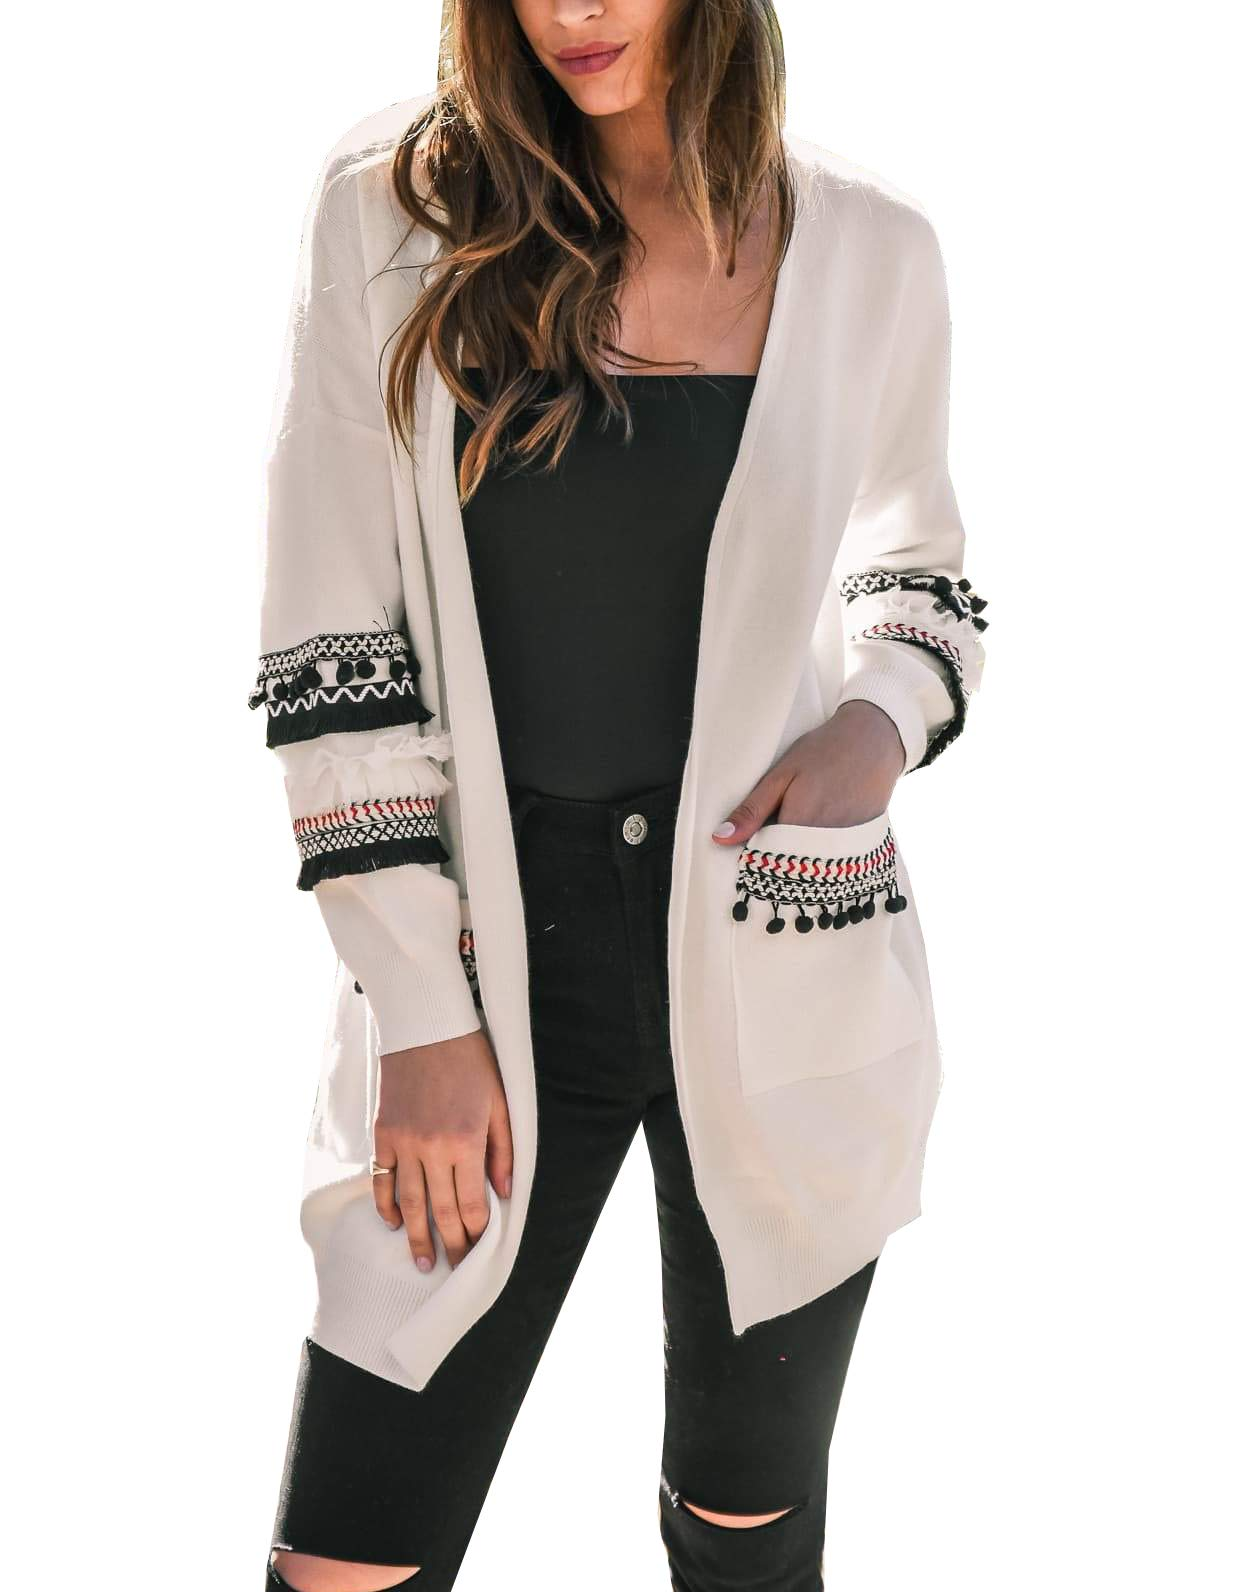 BTFBM Women Boho Long Sleeve Open Front Knit Cardigan with Pockets Bohemian Knitted Sweater Outwear Coat Tops (White, Small)